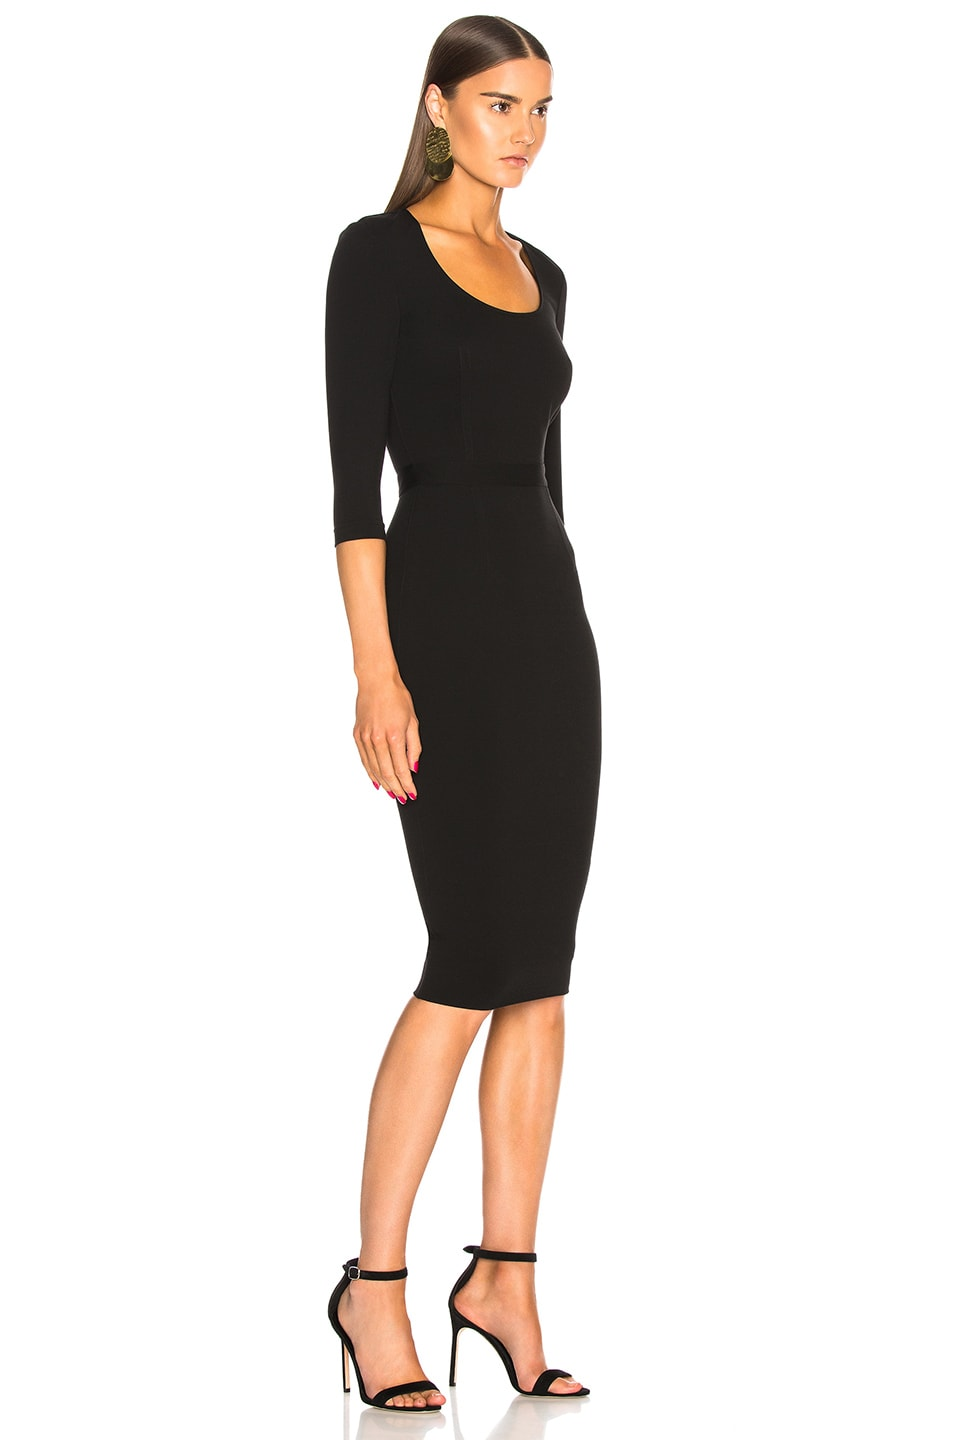 22dba49bb520 Image 2 of Victoria Beckham 3 4 Sleeve Scoop Neck Fitted Midi Dress in Black